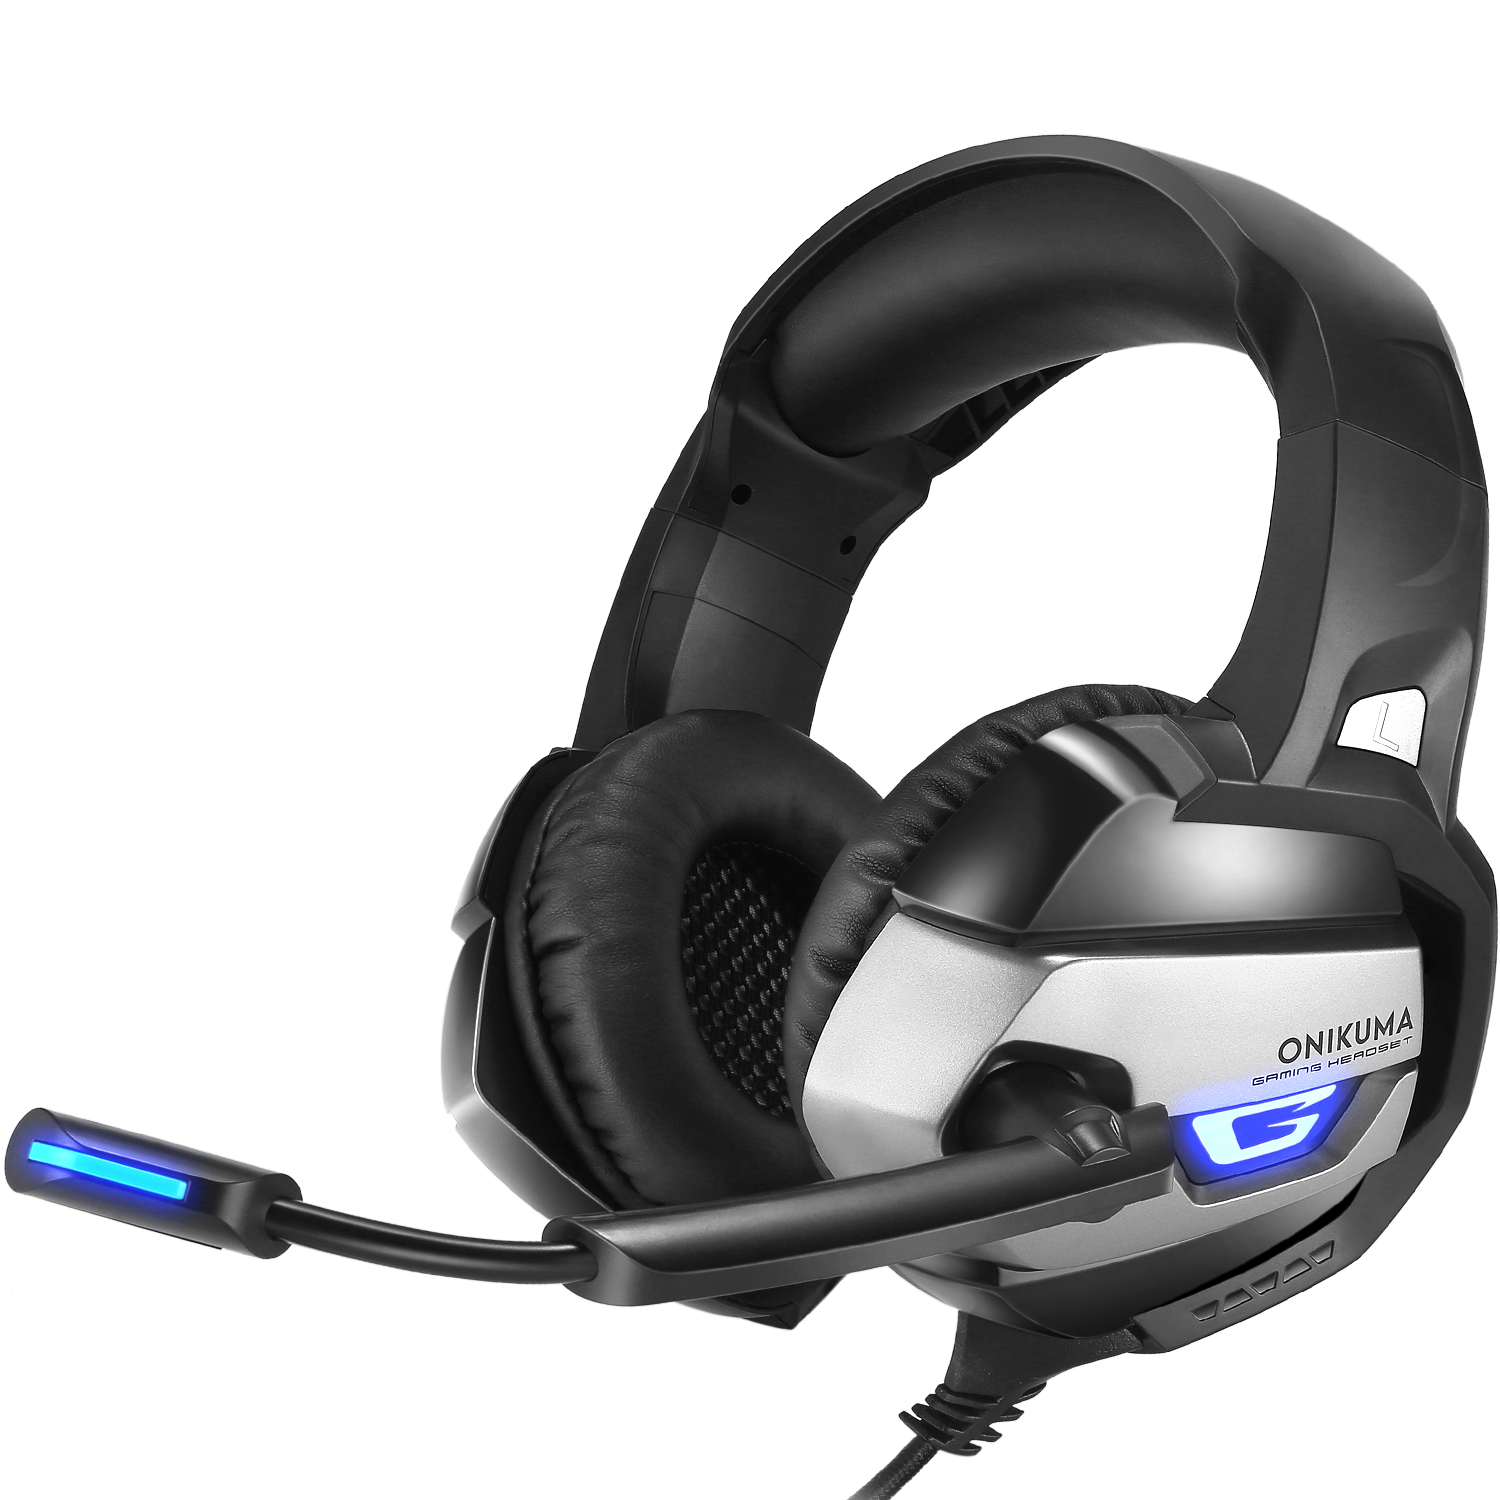 ONIKUMA Upgraded Gaming Headset for PS4, PC, Xbox One Controller Noise Cancelling Microphone Over Ear Headphones Surround Sound Bass Soft Memory Earmuffs, LED Light